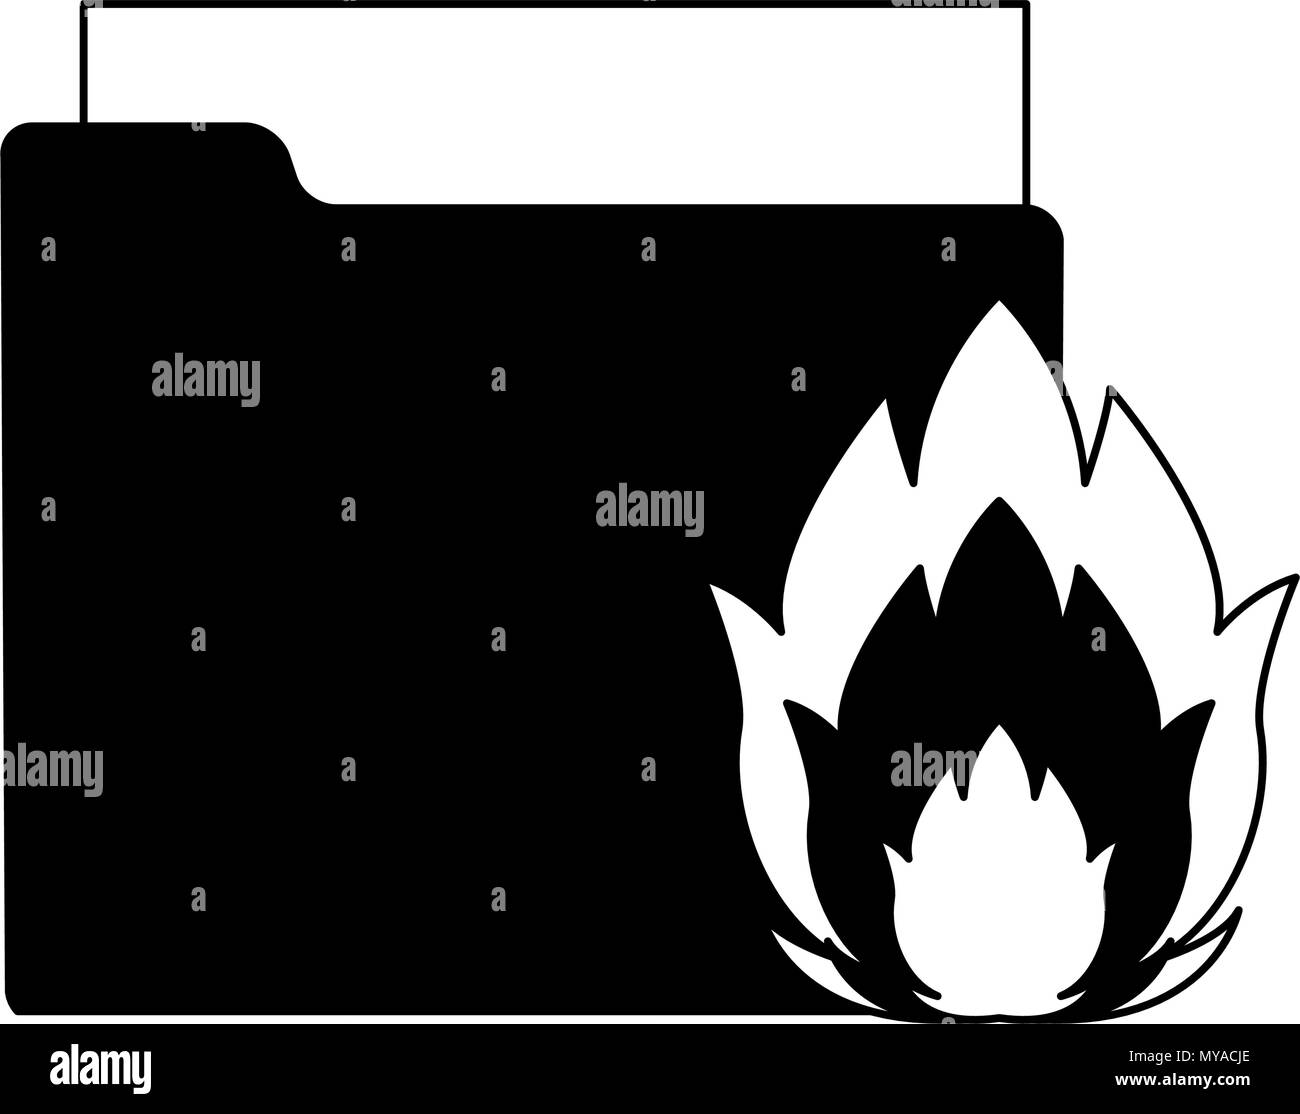 Folder with flamme in black and white - Stock Image